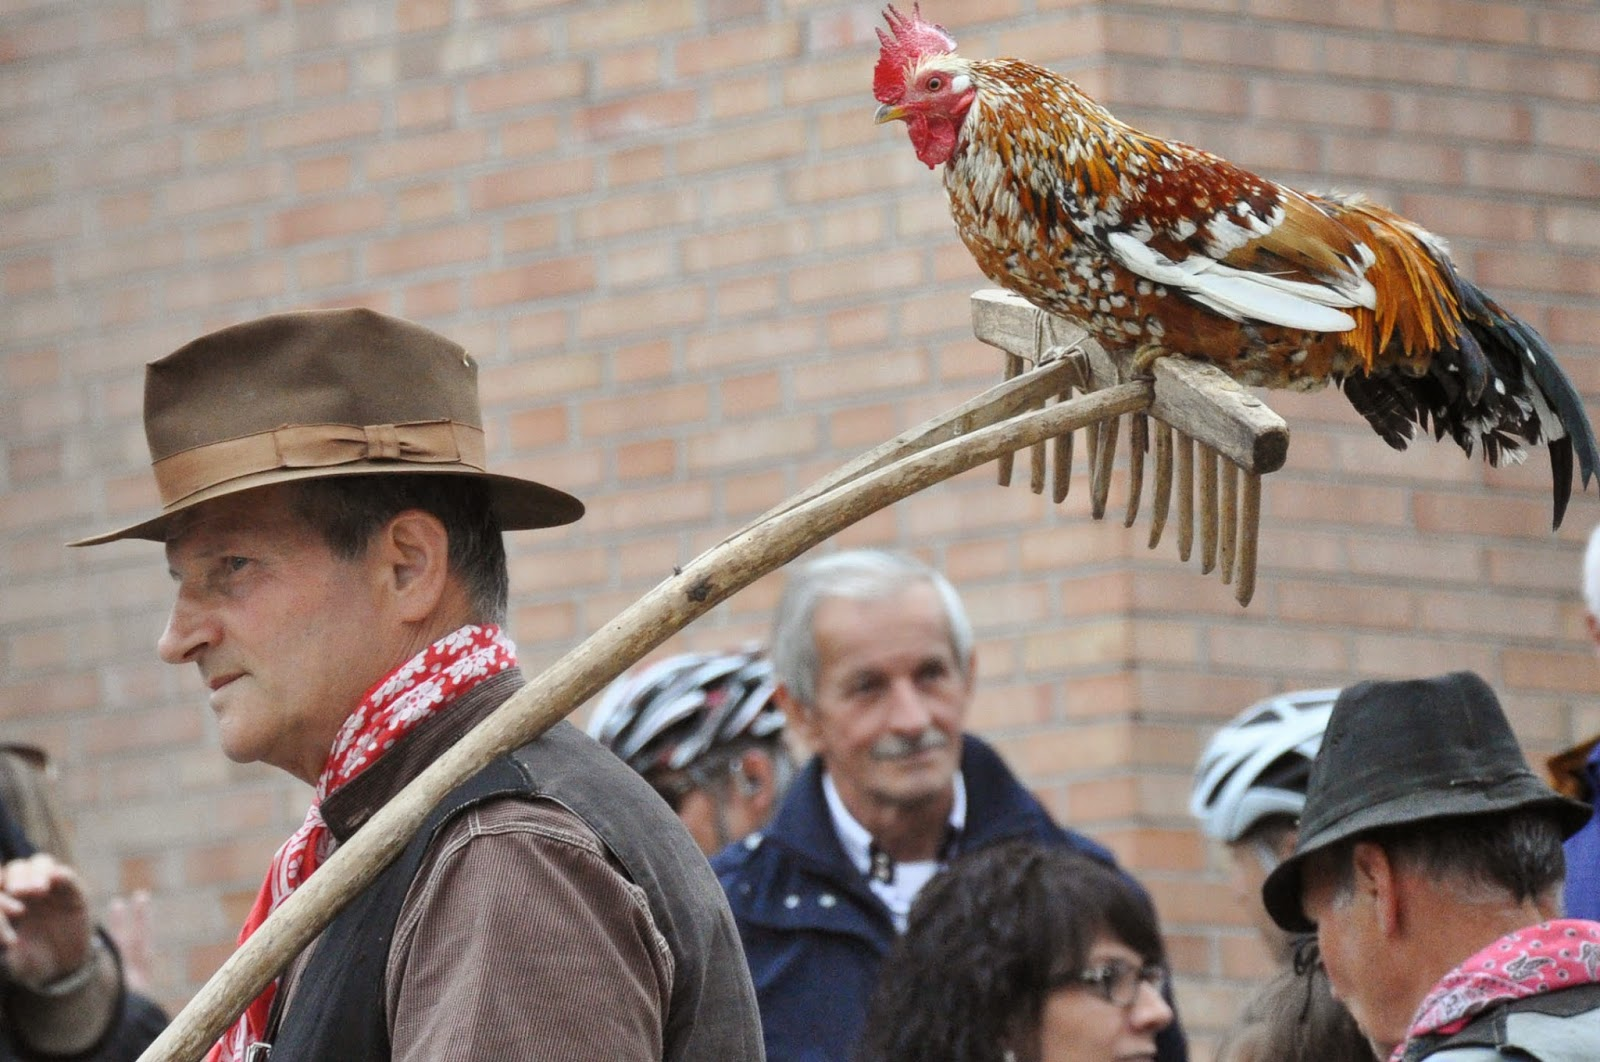 Rooster on a rake at the Parade, Donkey Race, Romano d'Ezzelino, Veneto, Italy